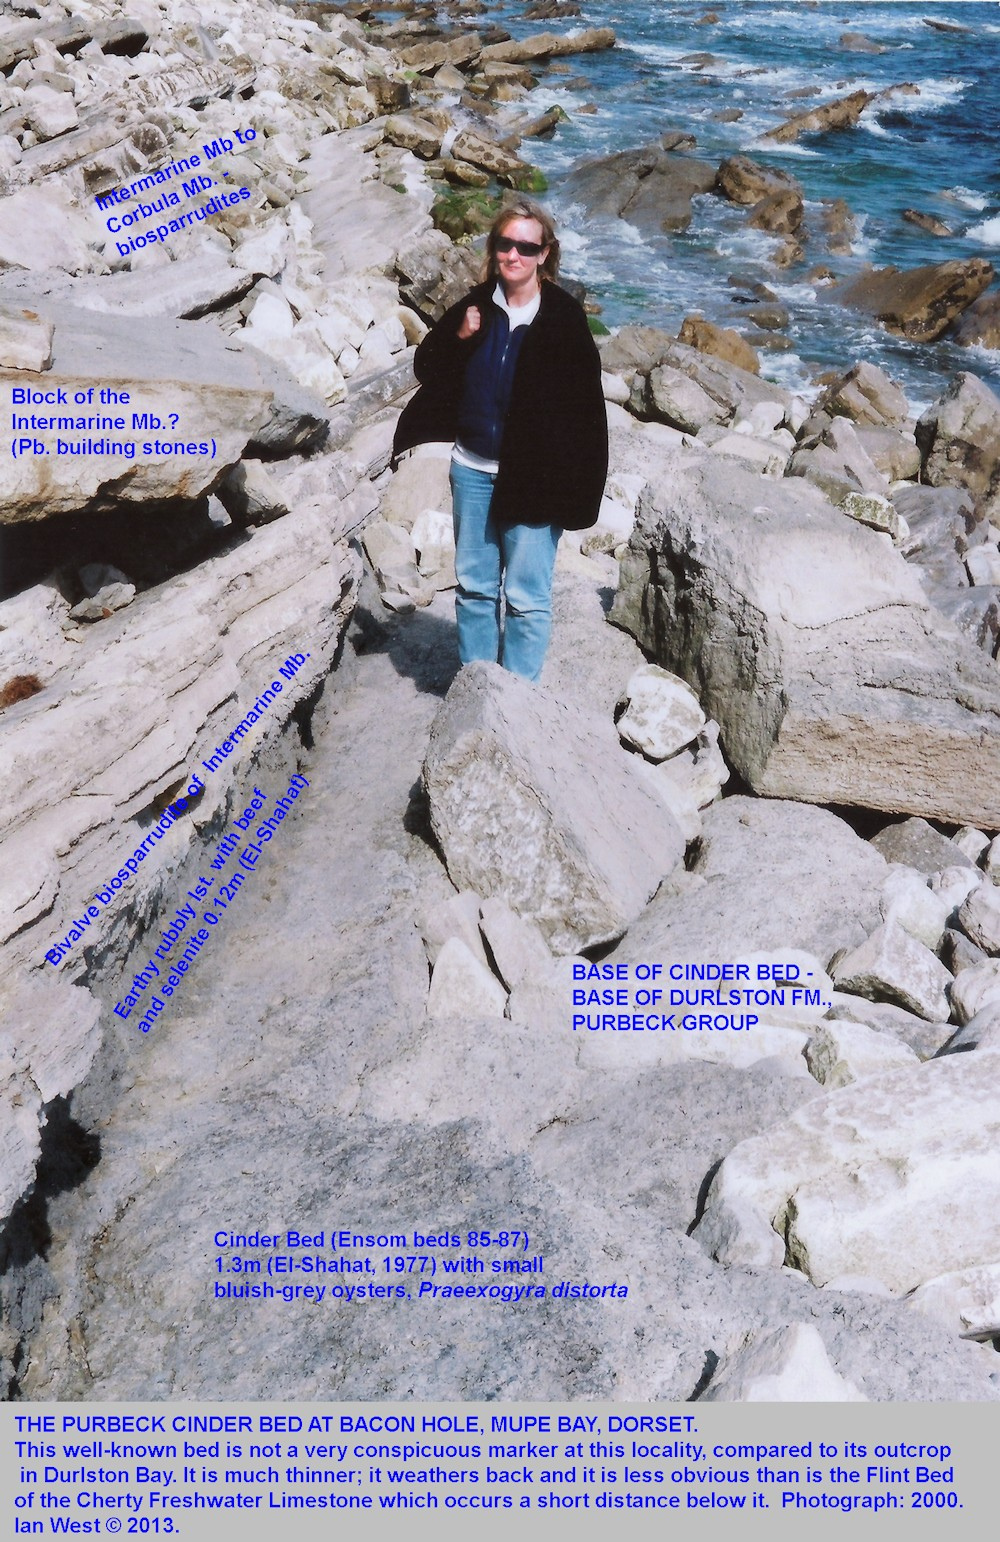 The Cinder Bed exposure at Bacon Hole, Mupe Bay, Dorset, 2000, with an American visiting geologist